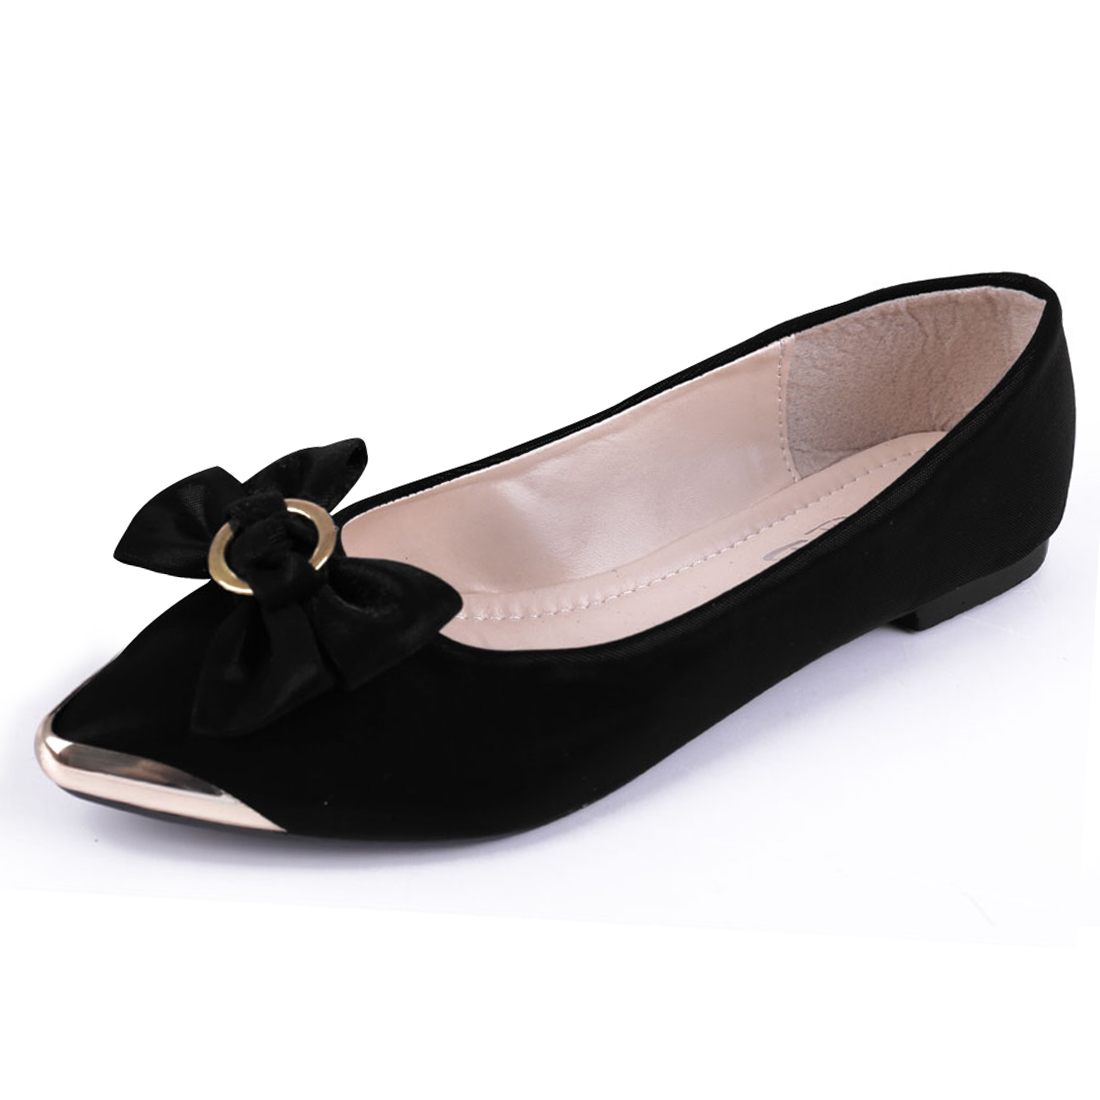 Women Pointed Toe Bowknot Decor Flats Black US 6.5